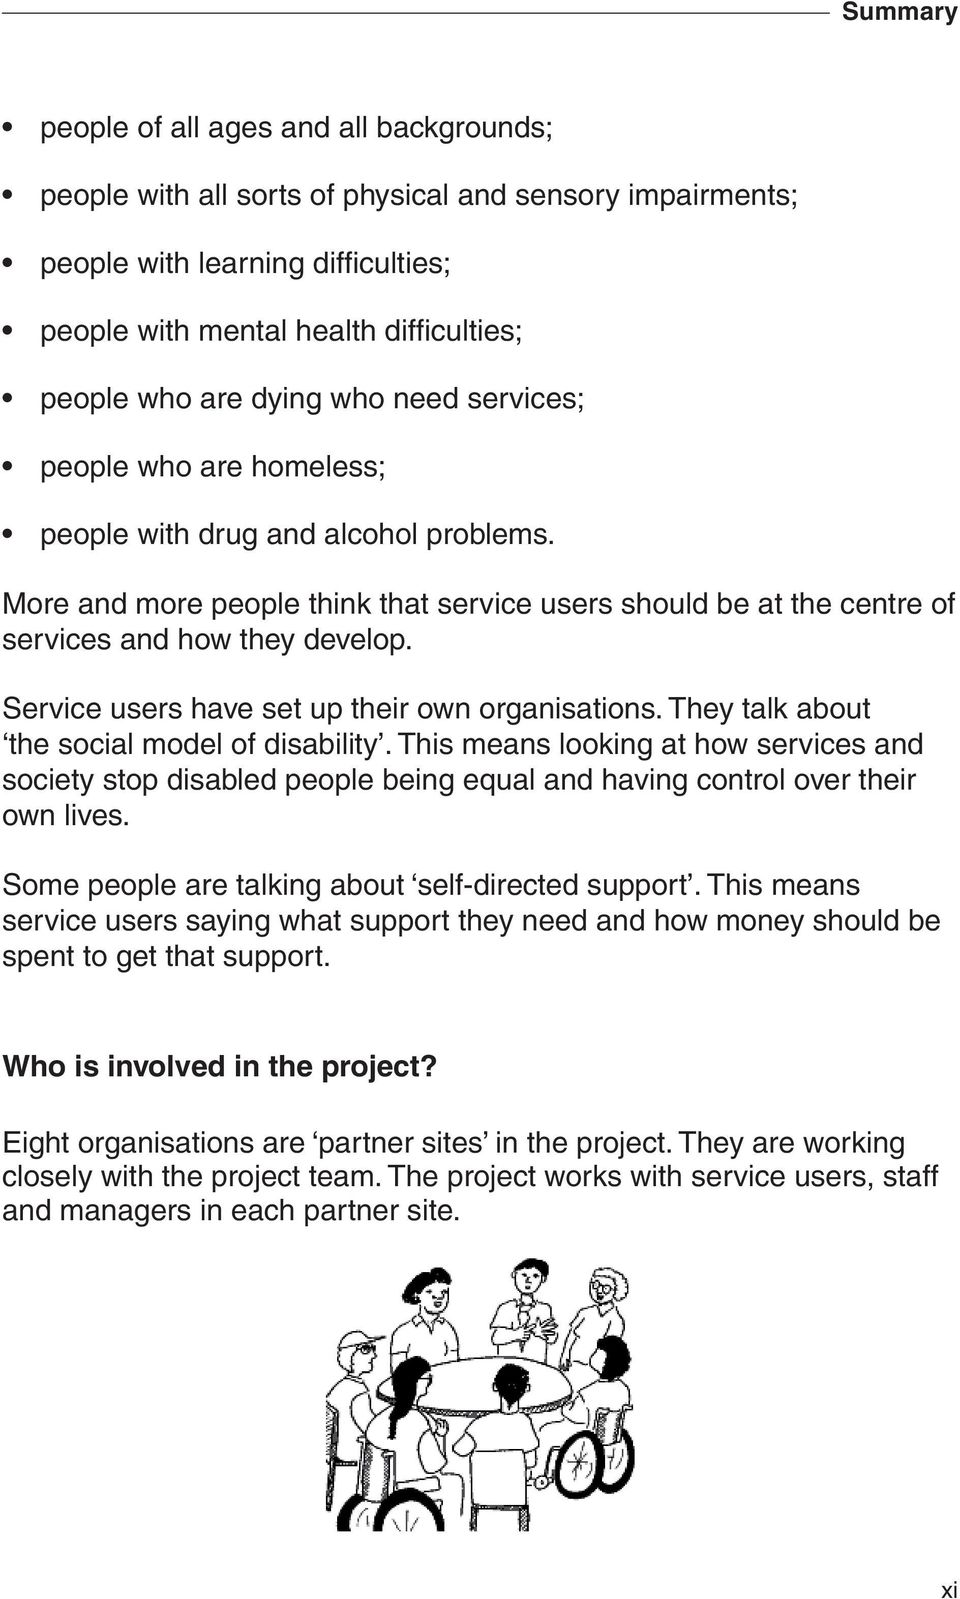 Service users have set up their own organisations. They talk about the social model of disability.